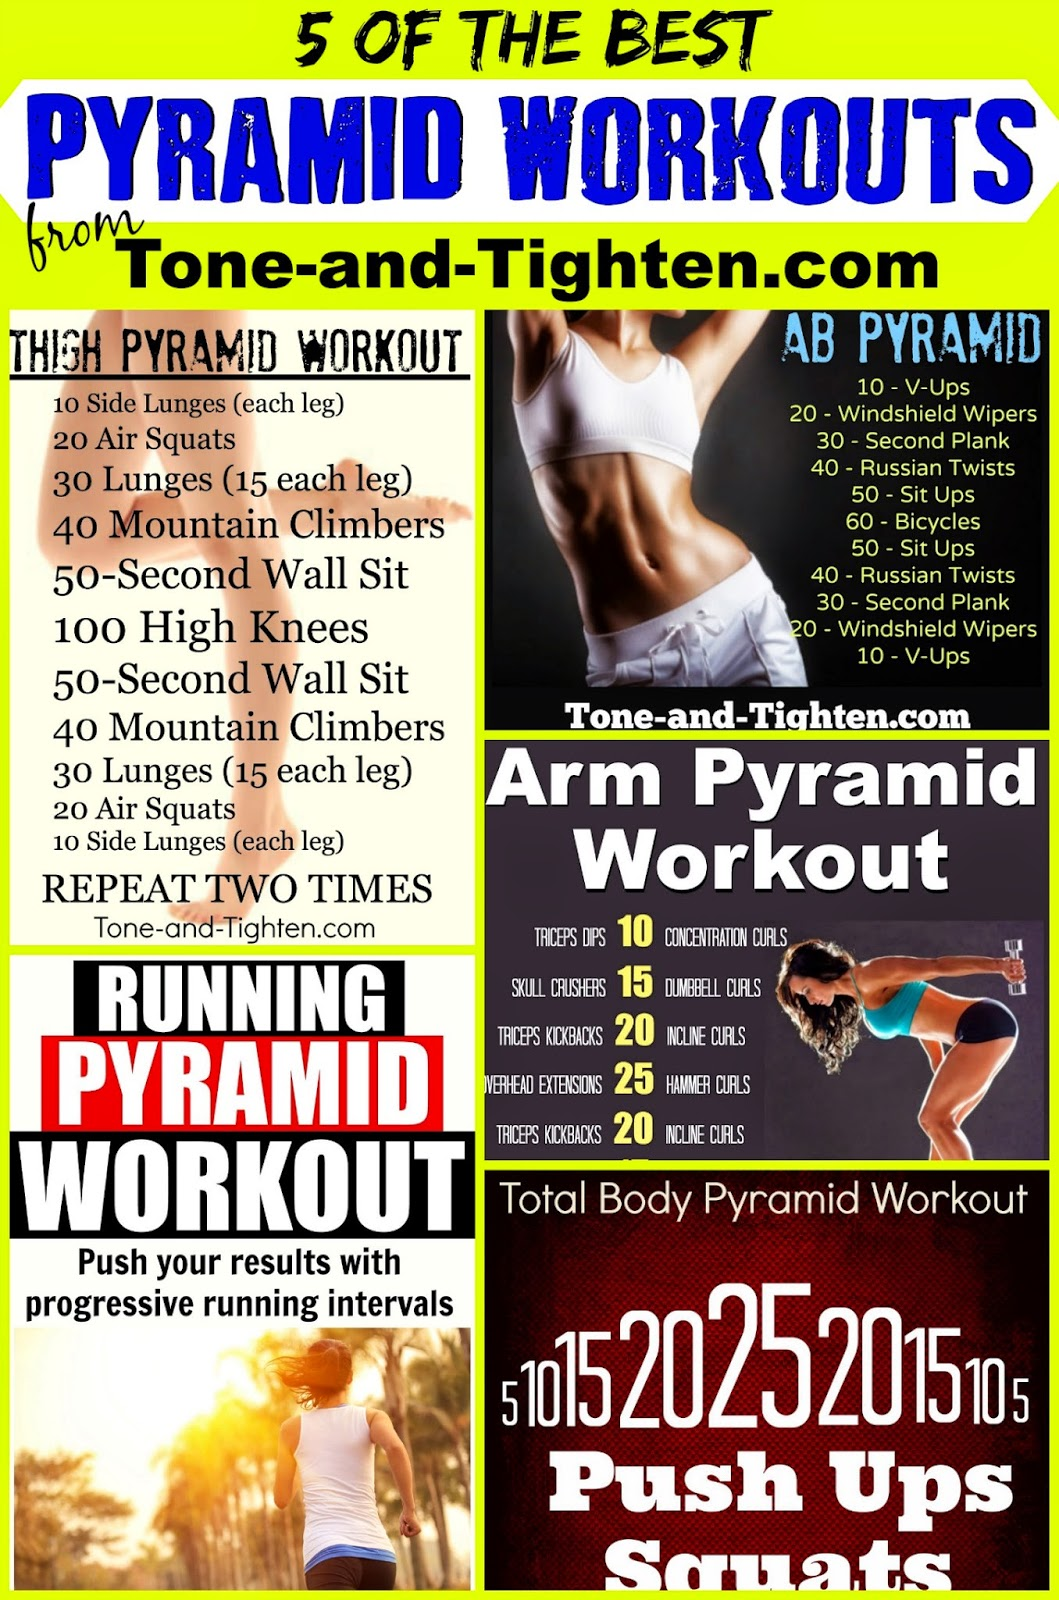 Weekly Workout Plan – One Week of Pyramid Workouts – All The Best ...